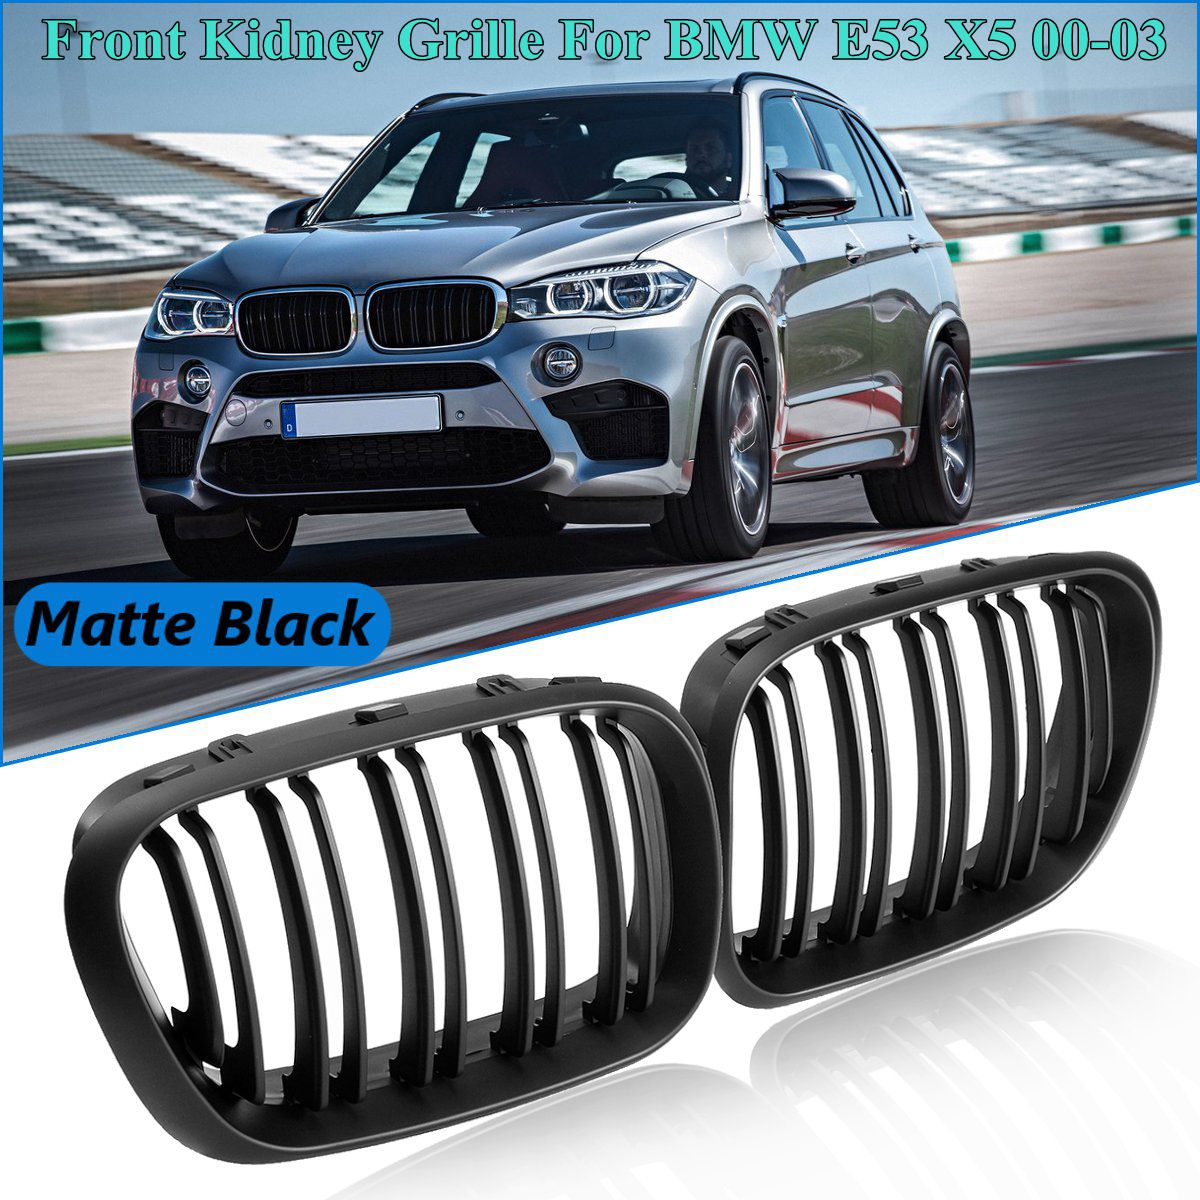 Pair Matte Black Front Kidney Grille Grills Double Slat For BMW E53 X5 2000 2001 2002